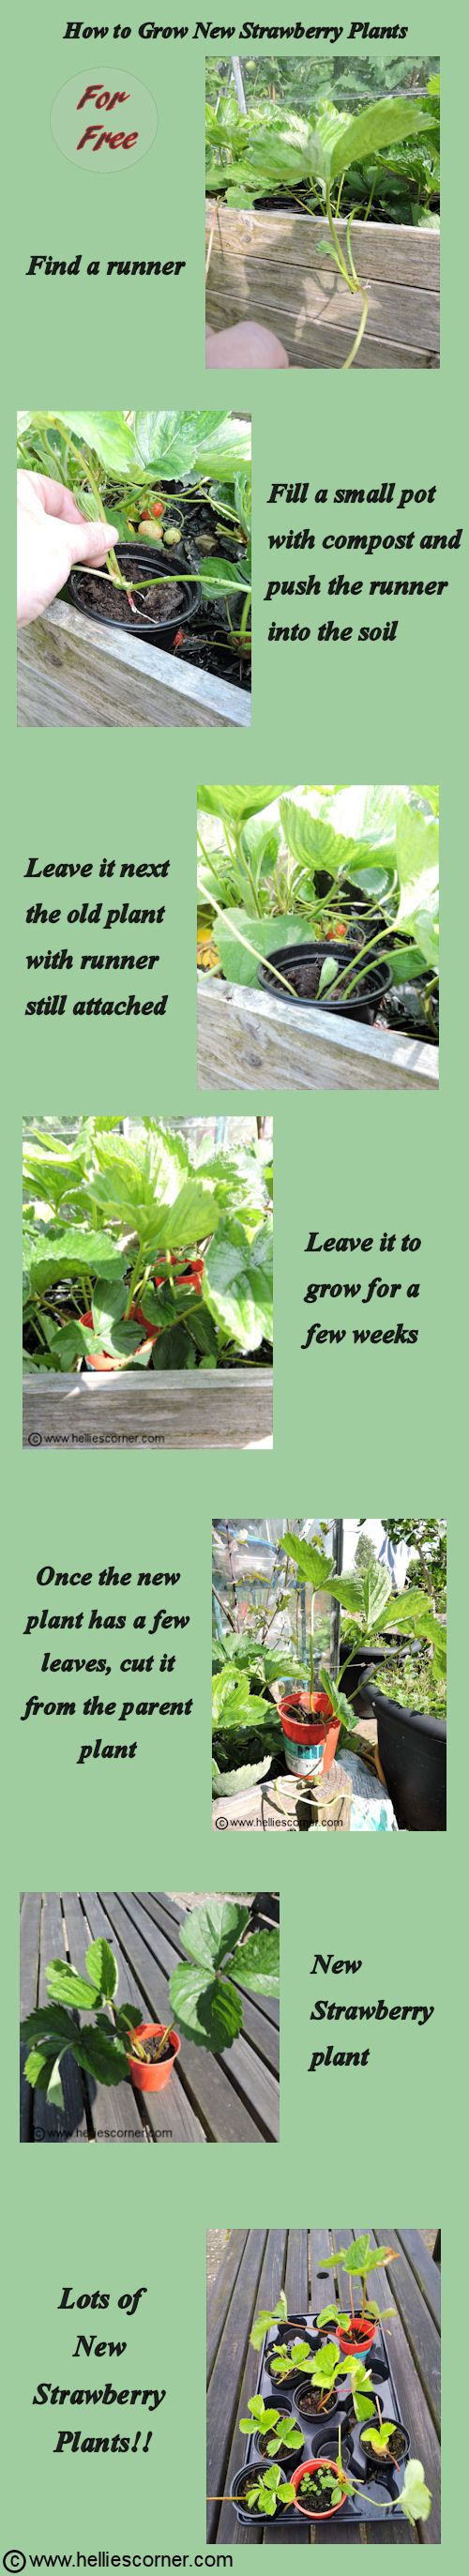 How To Grow New Strawberry Plants - for free | Hellie's Corner http://www.helliescorner.com/?p=3936